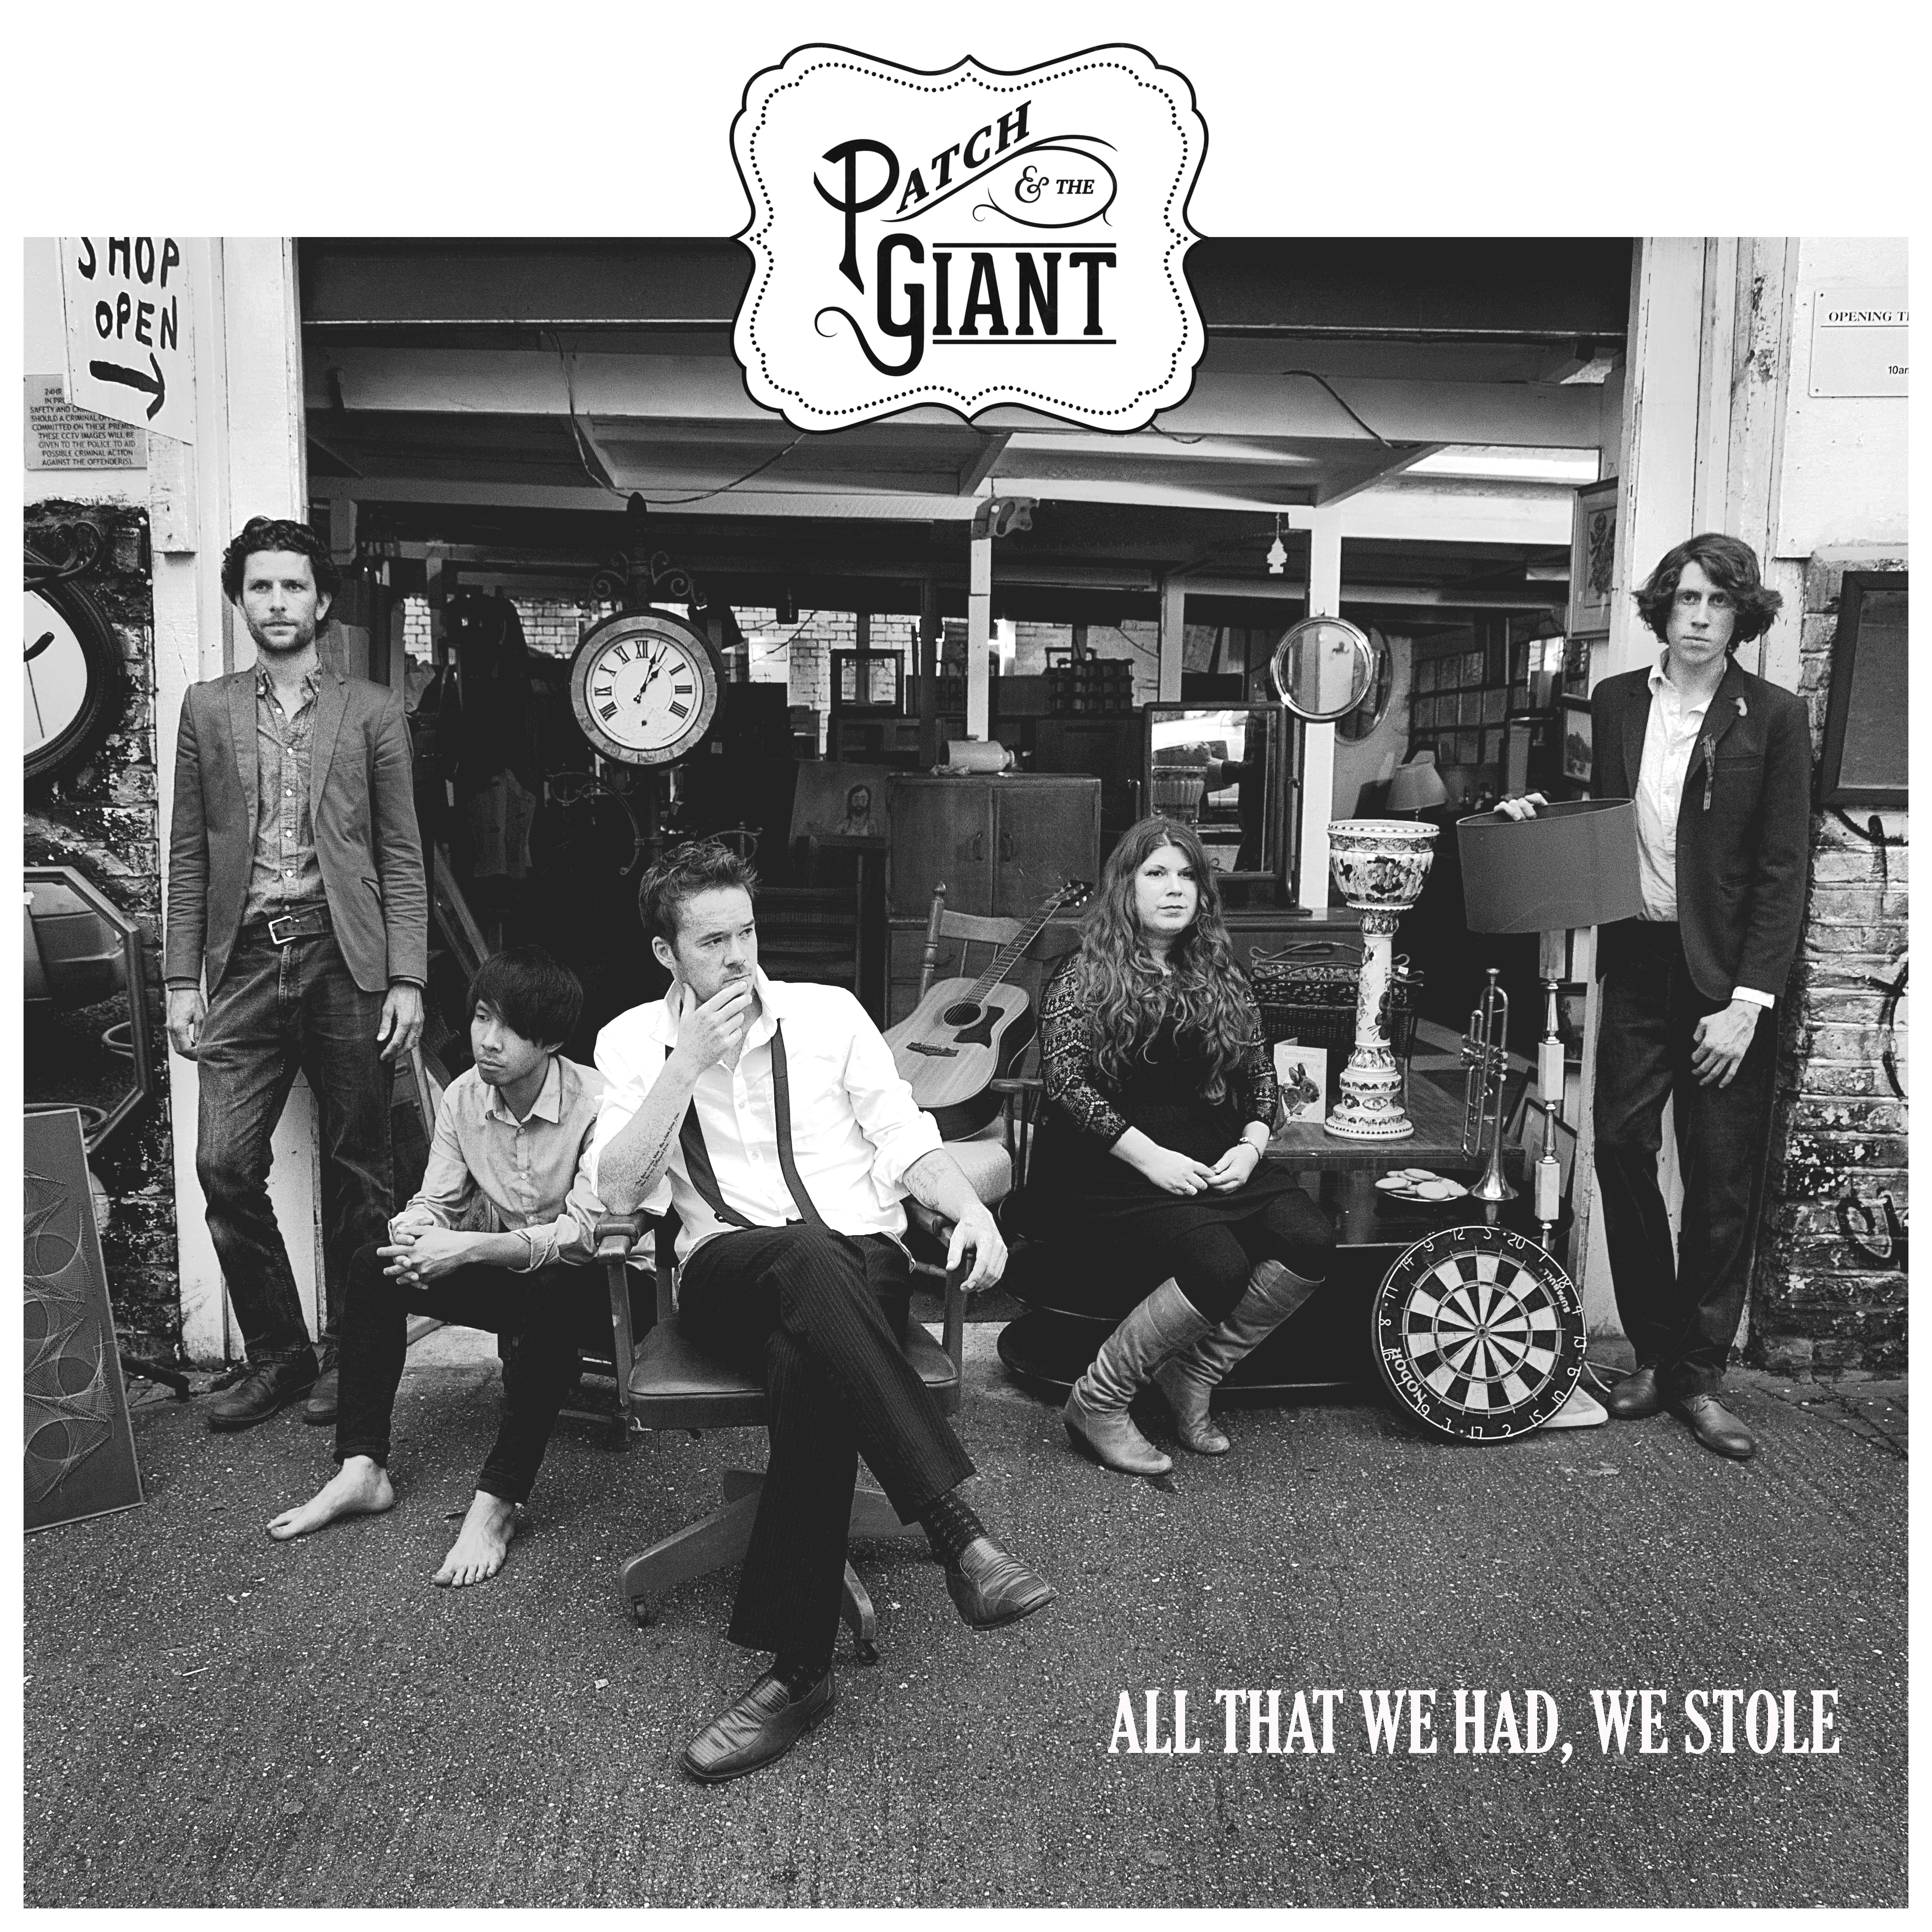 All That We Had, We Stole (Limited Edition Signed CD) - Patch and the Giant